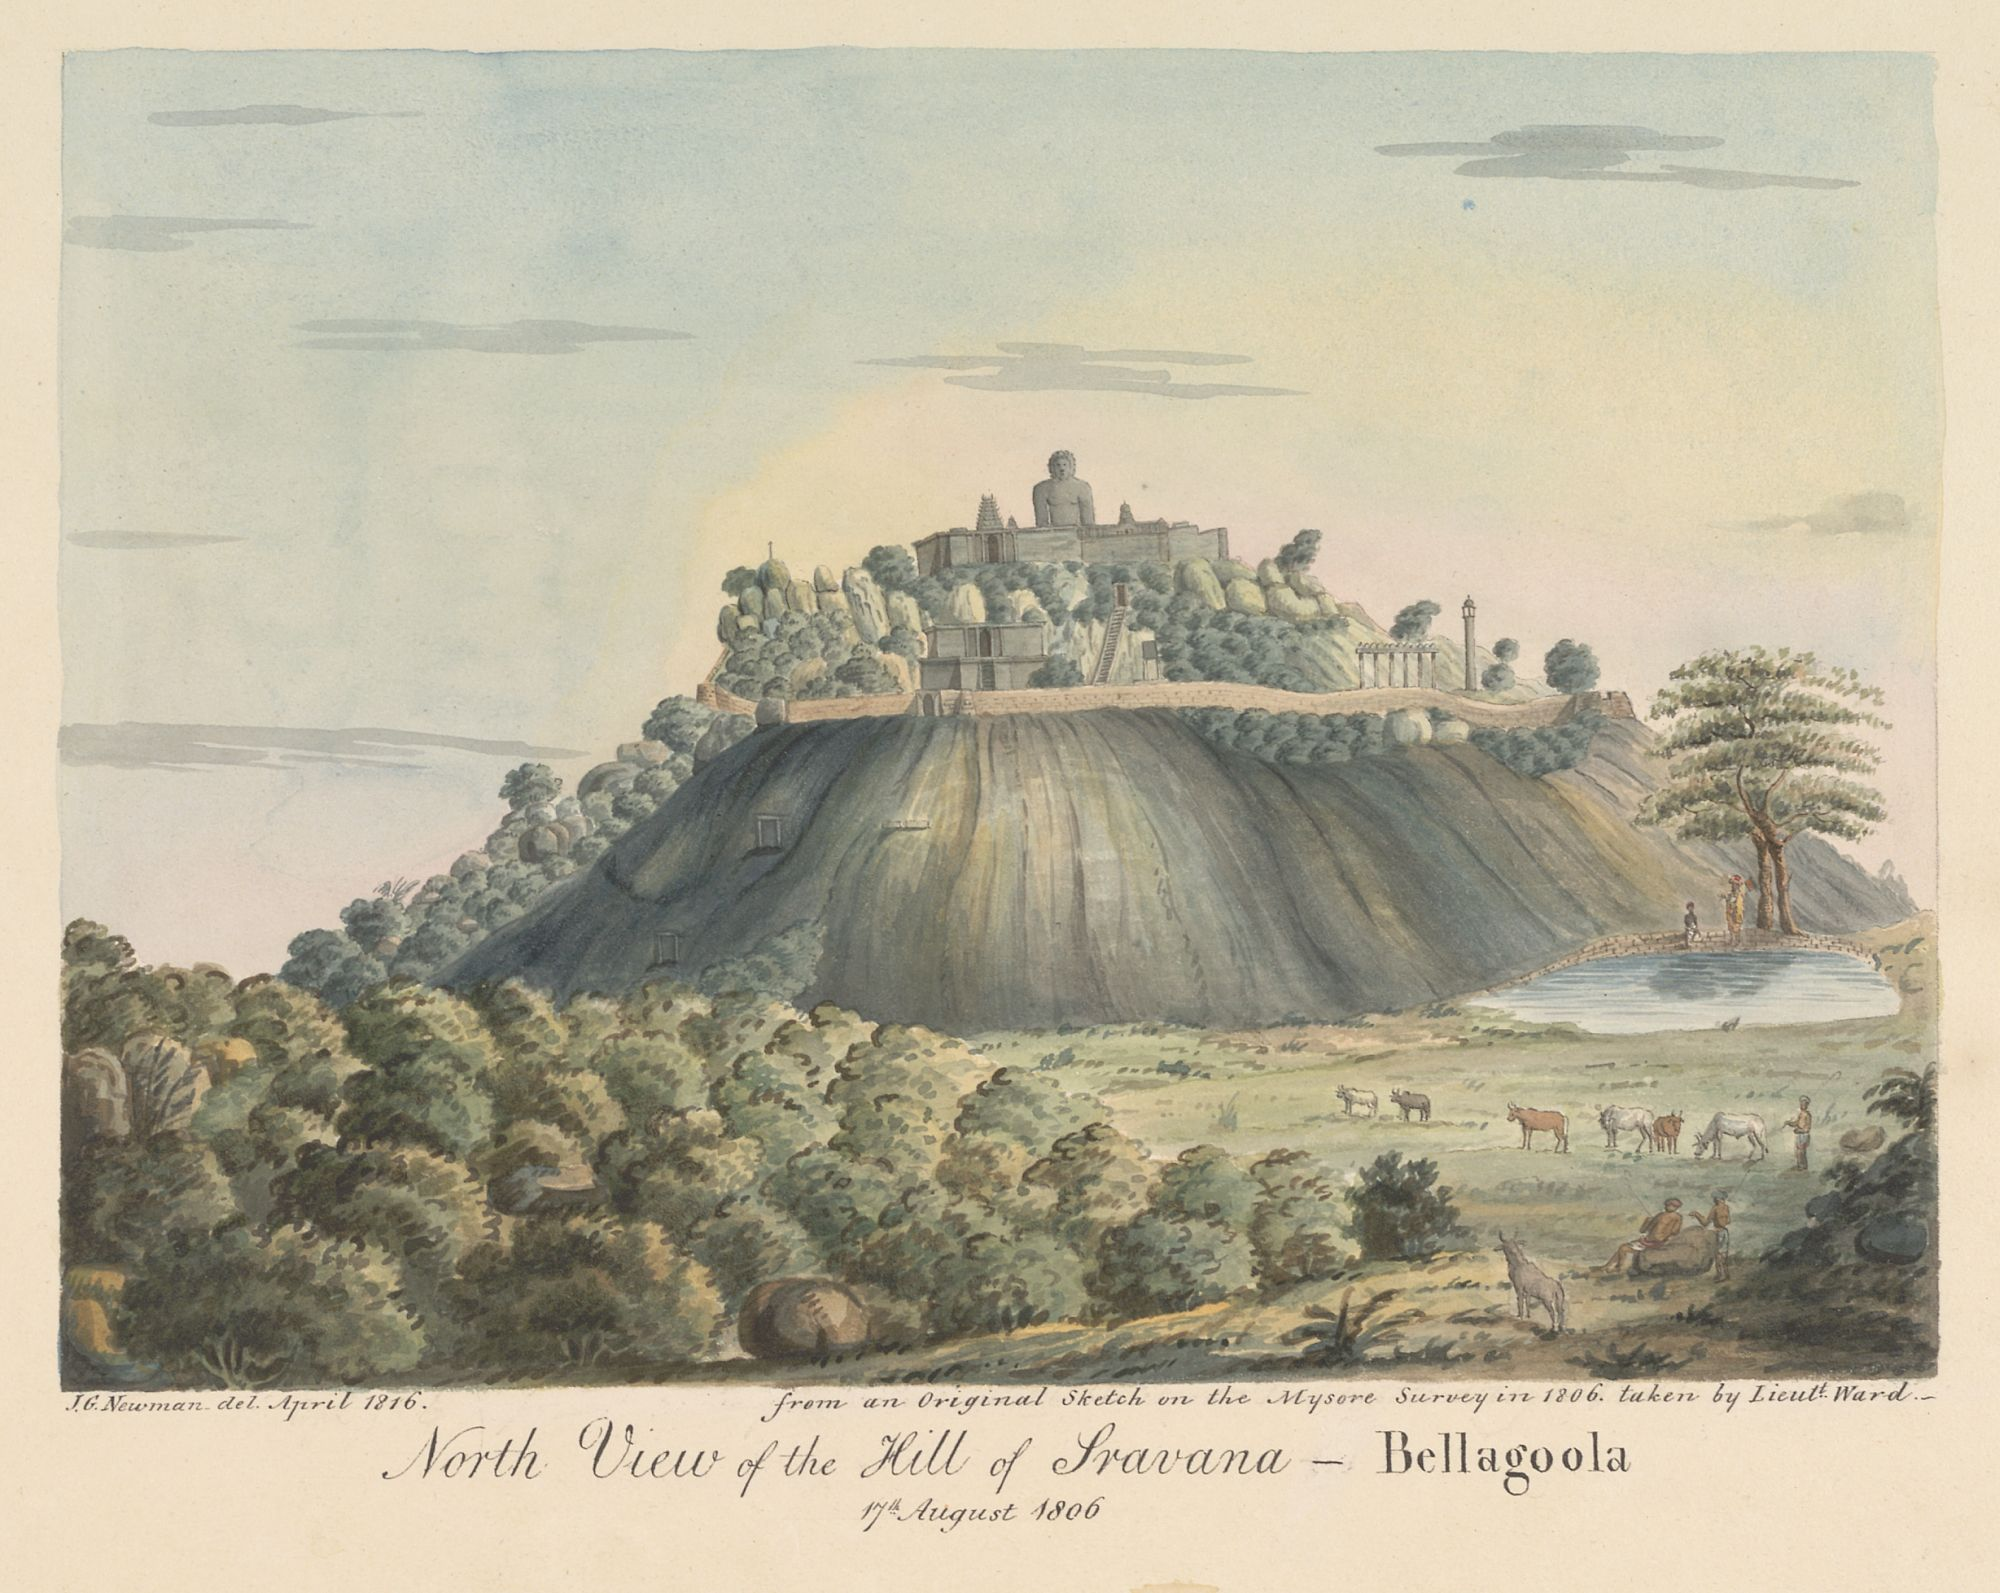 North View of the Hill of Sravana – Bellagoola, by John Newman after Benjamin Swain Ward.